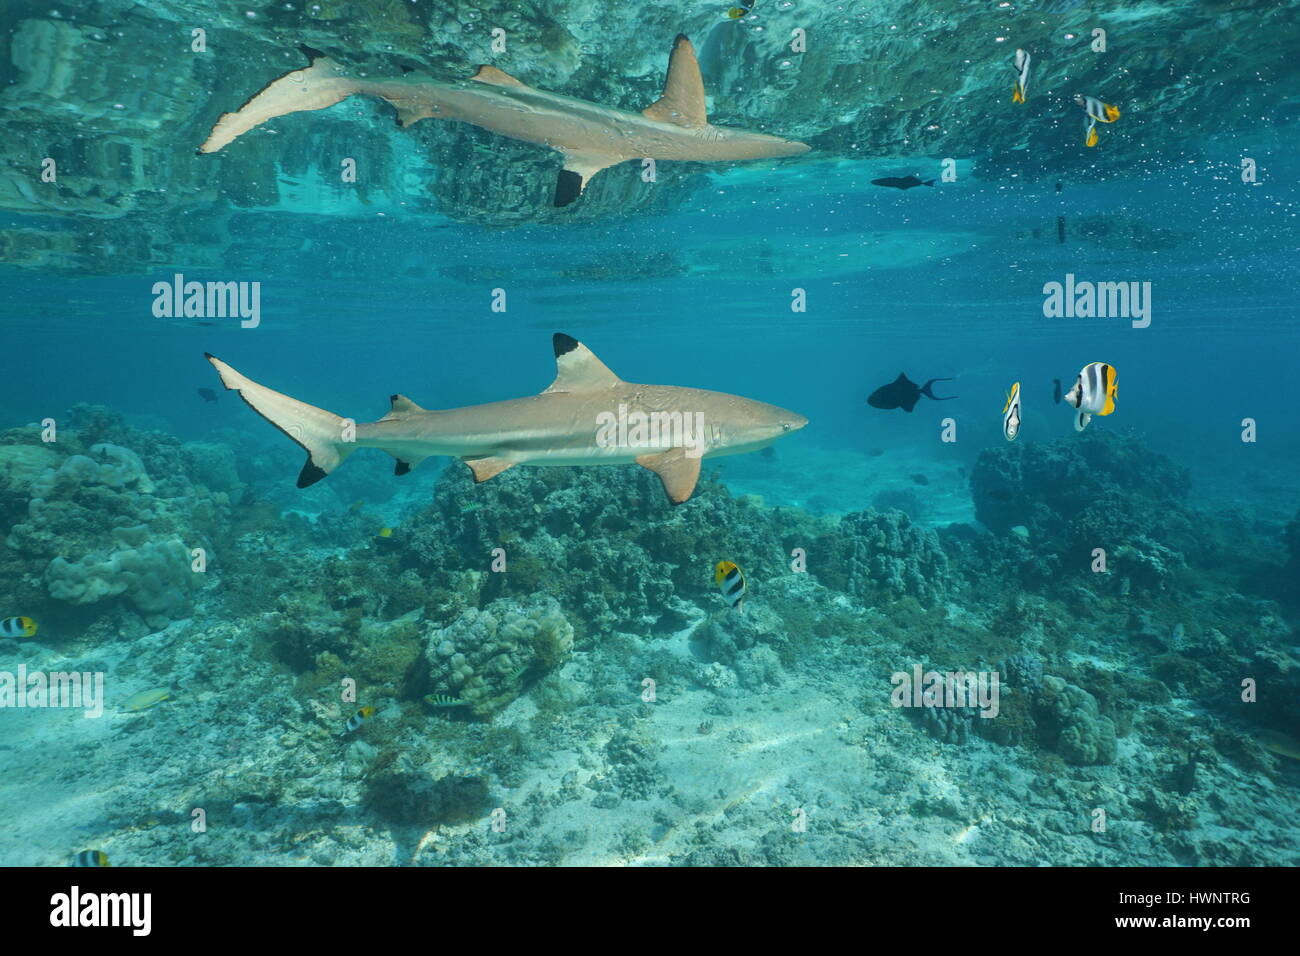 A blacktip reef shark with tropical fish underwater reflected below the calm water surface, south Pacific ocean, - Stock Image